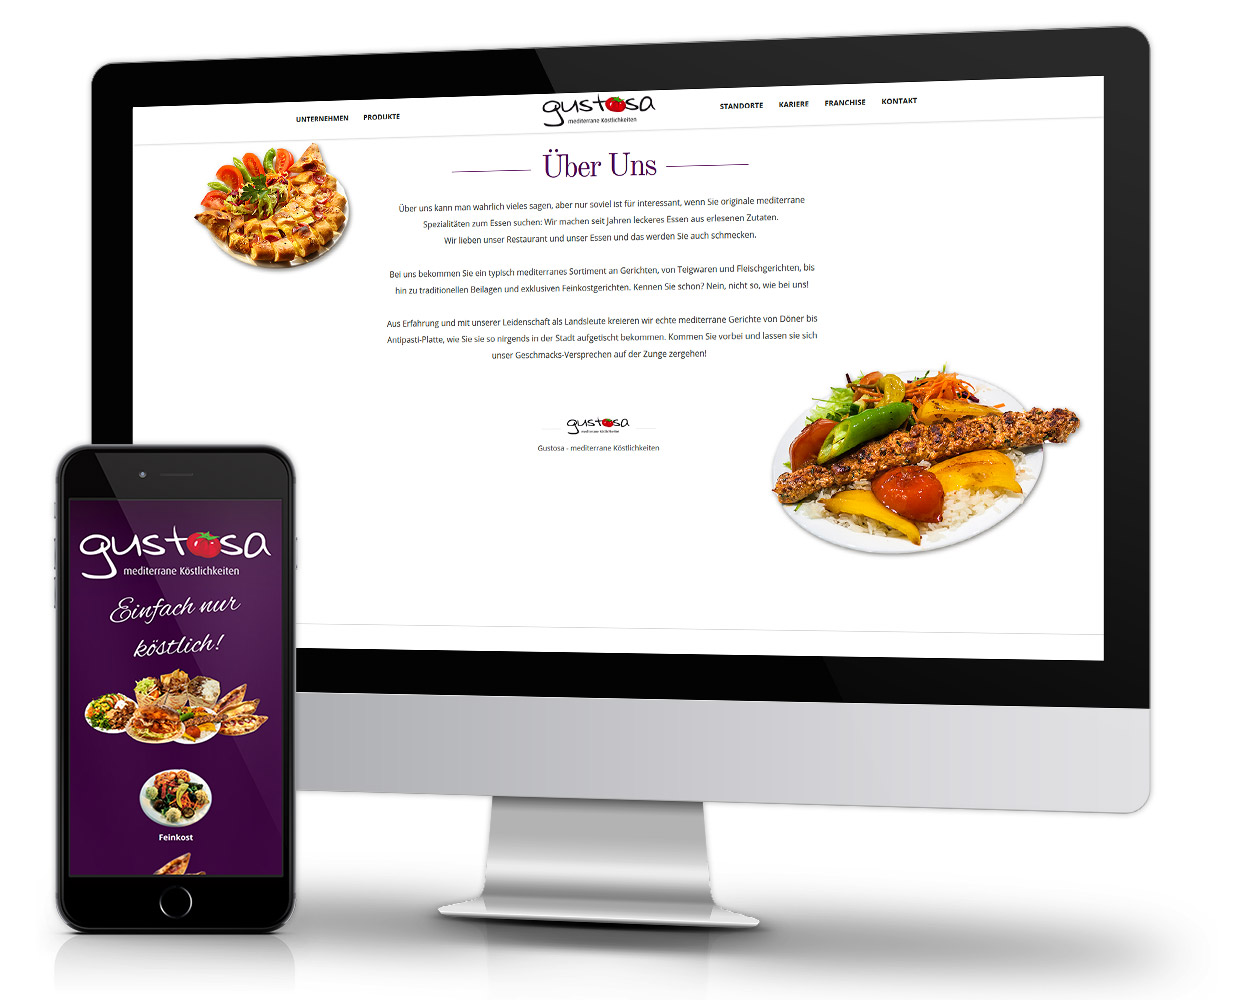 Responsiv Restaurant Webdesign Mobile Optimiert Homepage erstellen Ref. Gustosa1 - DNZ Networks